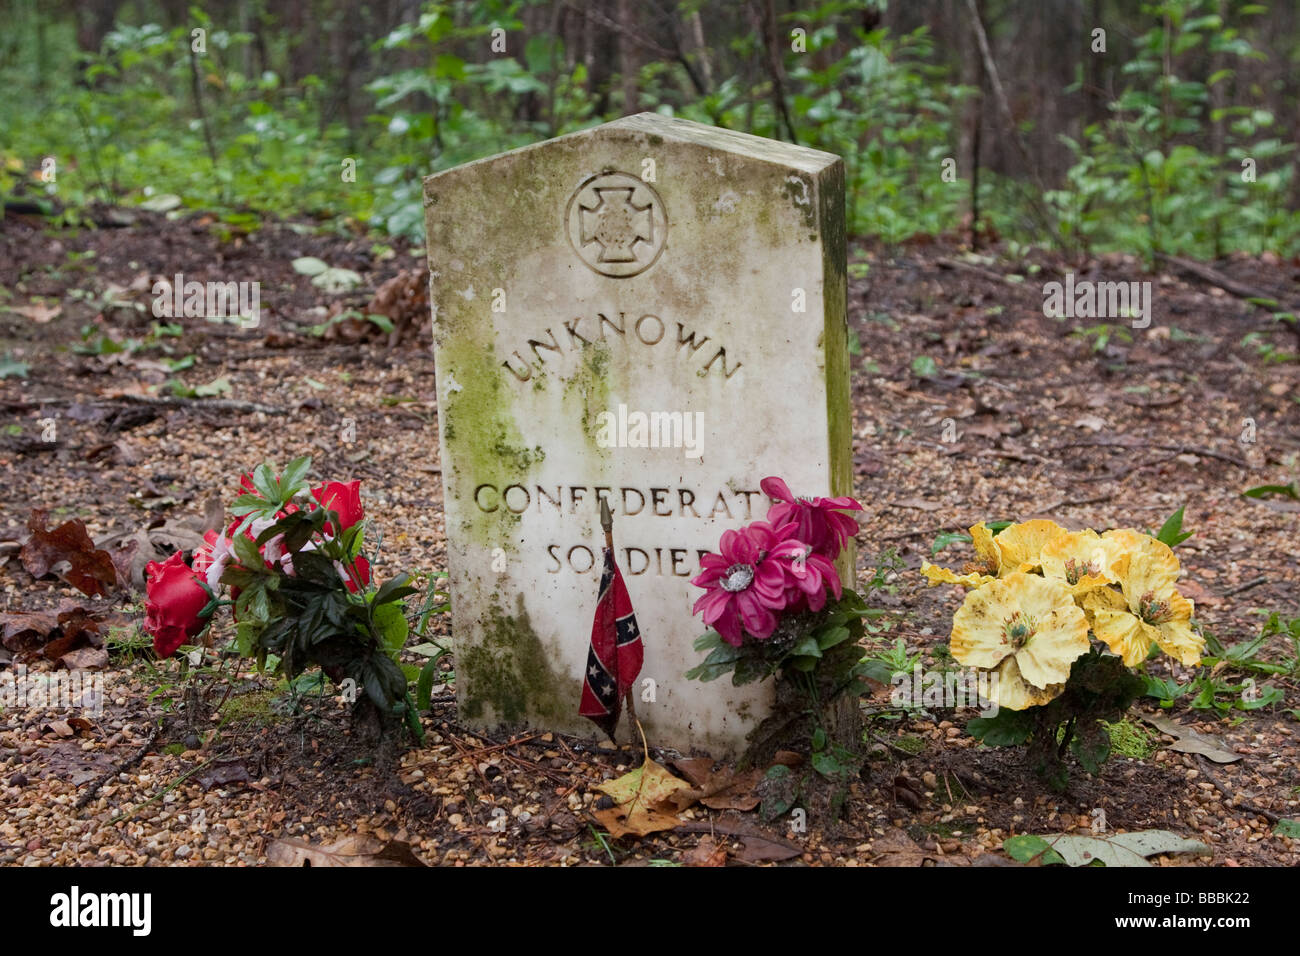 Natchez Trace Parkway, Mile 269, near Tupelo, Mississippi, USA.  Gravestone for Unknown Confederate Soldier. - Stock Image